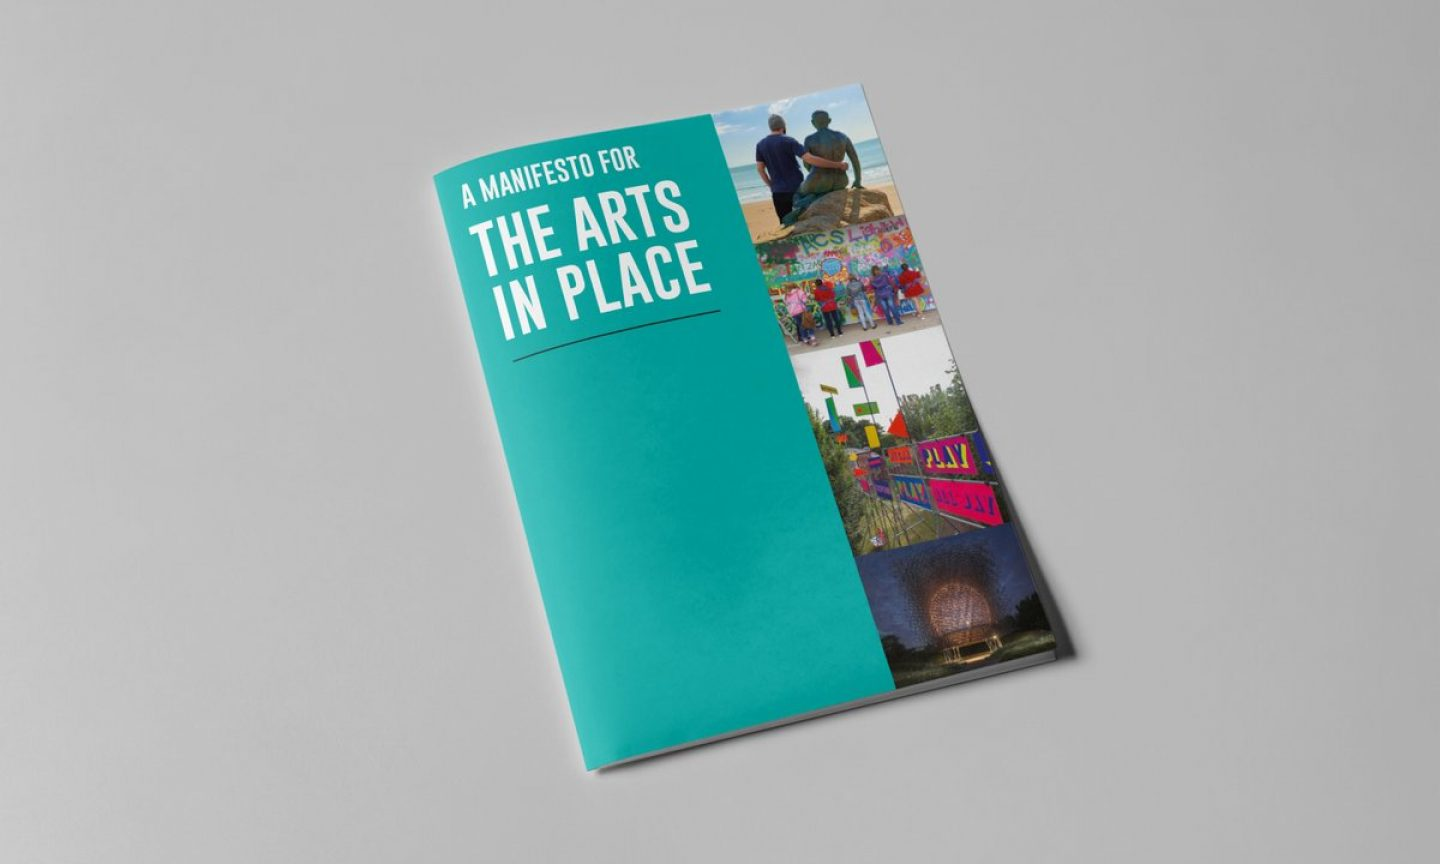 A Manifesto for the Arts In Place